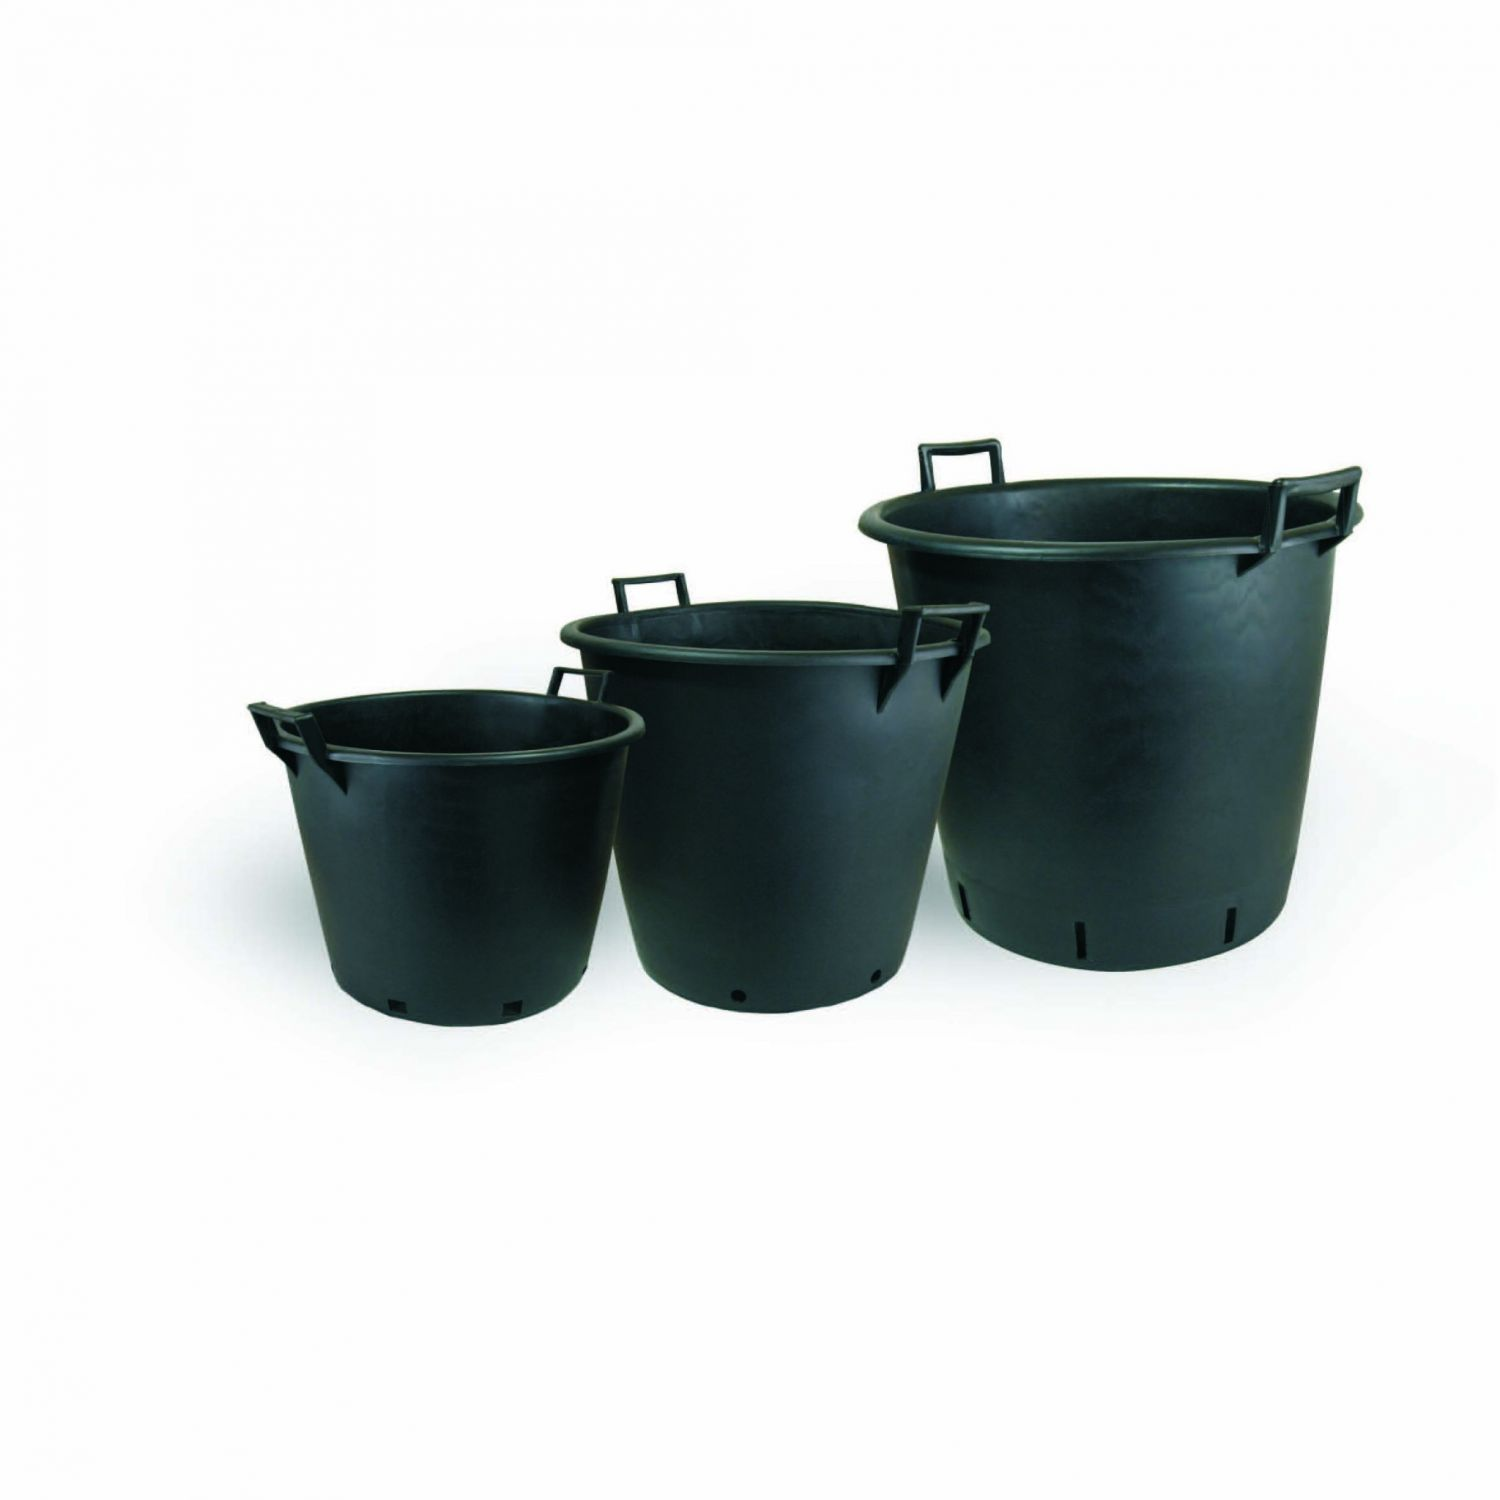 CONTAINERS WITH HANDLES